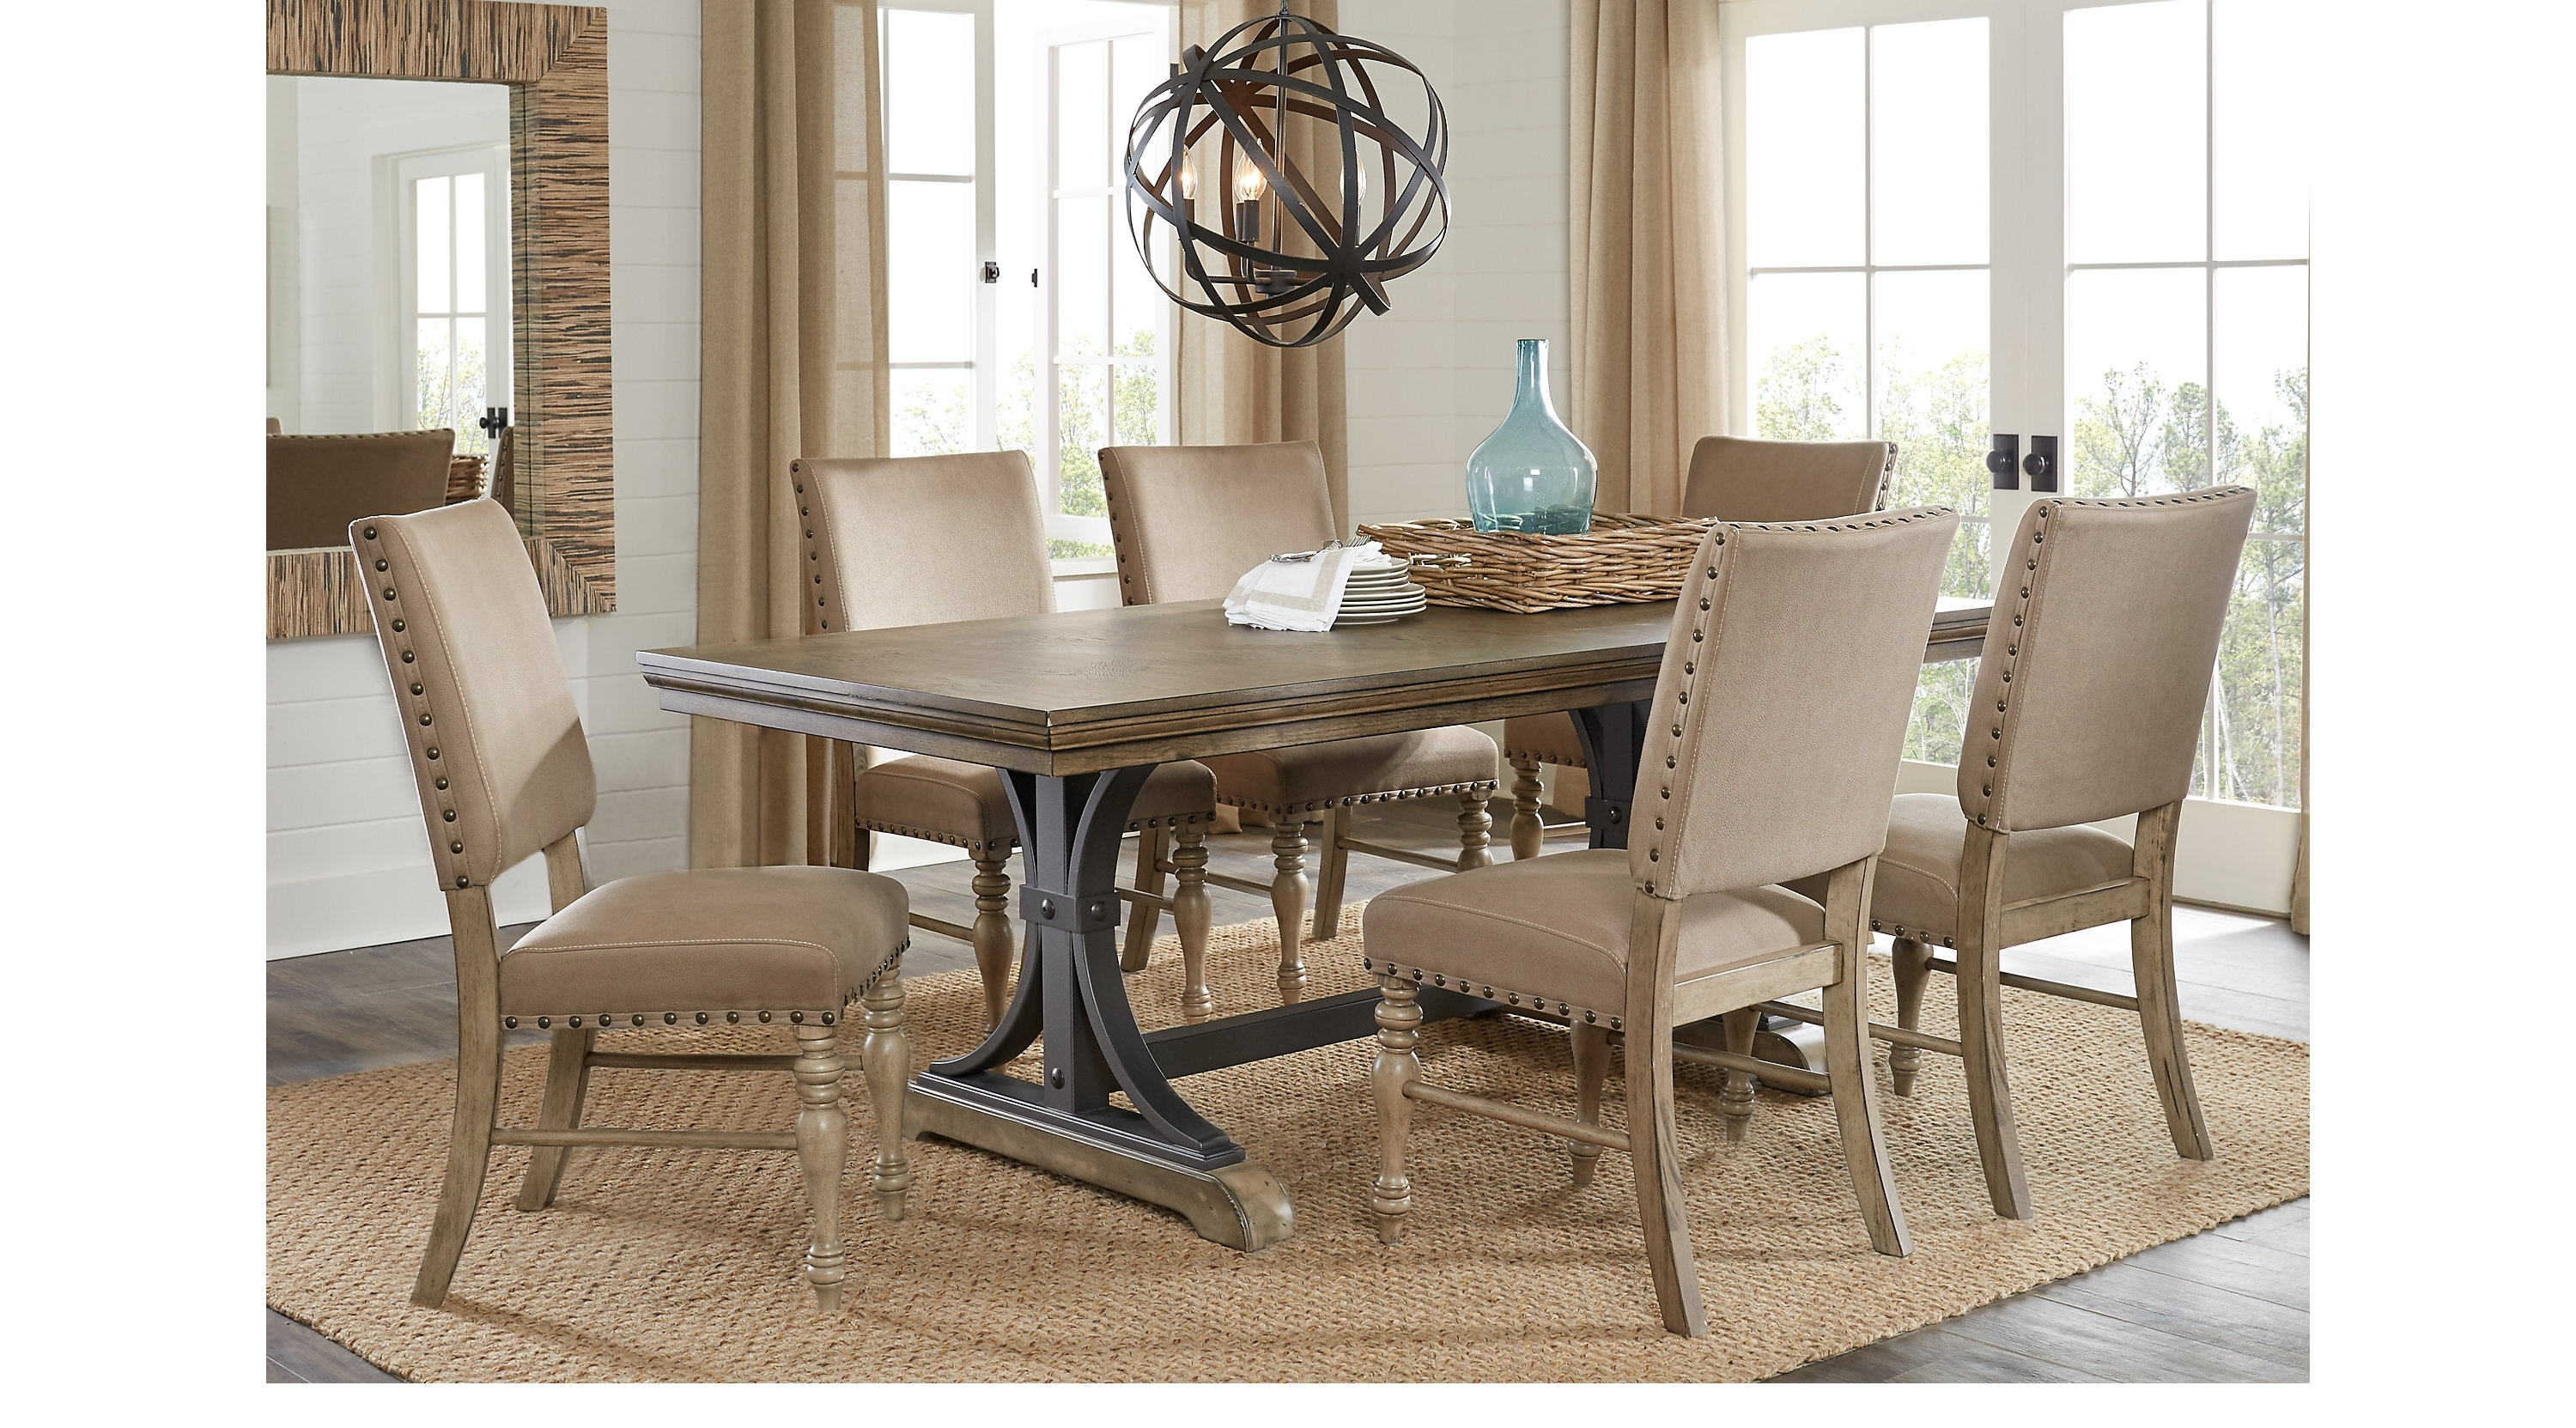 Home Design Decorating Ideas With Jaxon 7 Piece Rectangle Dining Sets With Wood Chairs (Gallery 23 of 25)